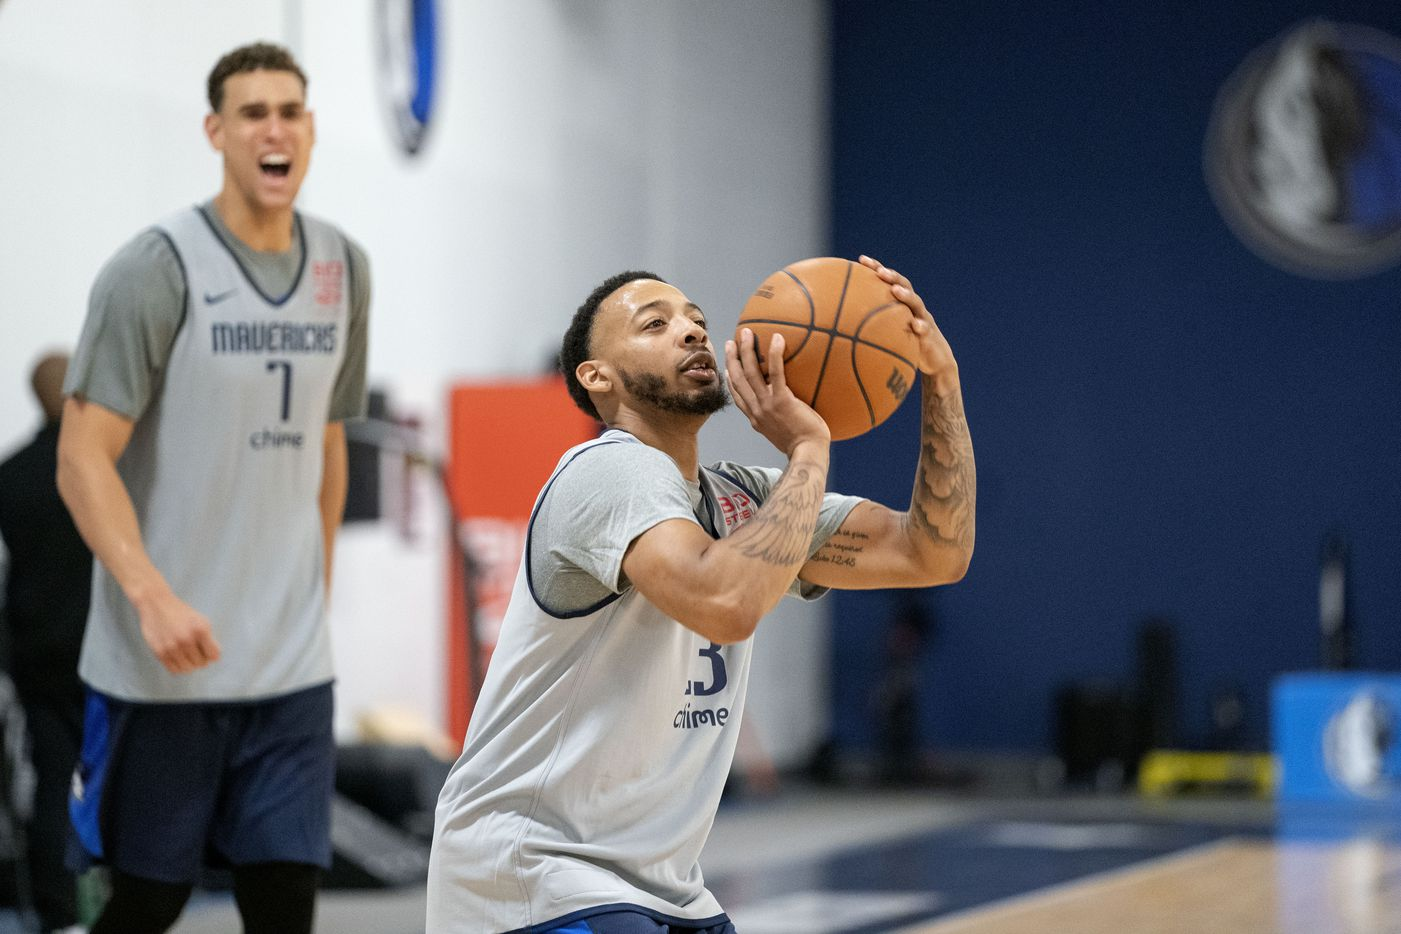 Dallas Mavericks guard Carlik Jones (23) shoots a 3-pointer as center Dwight Powell (7) jokingly distracts him during the first practice of training camp, Tuesday, September 28, 2021 at the Dallas Mavericks Training Center in Dallas. (Jeffrey McWhorter/Special Contributor)